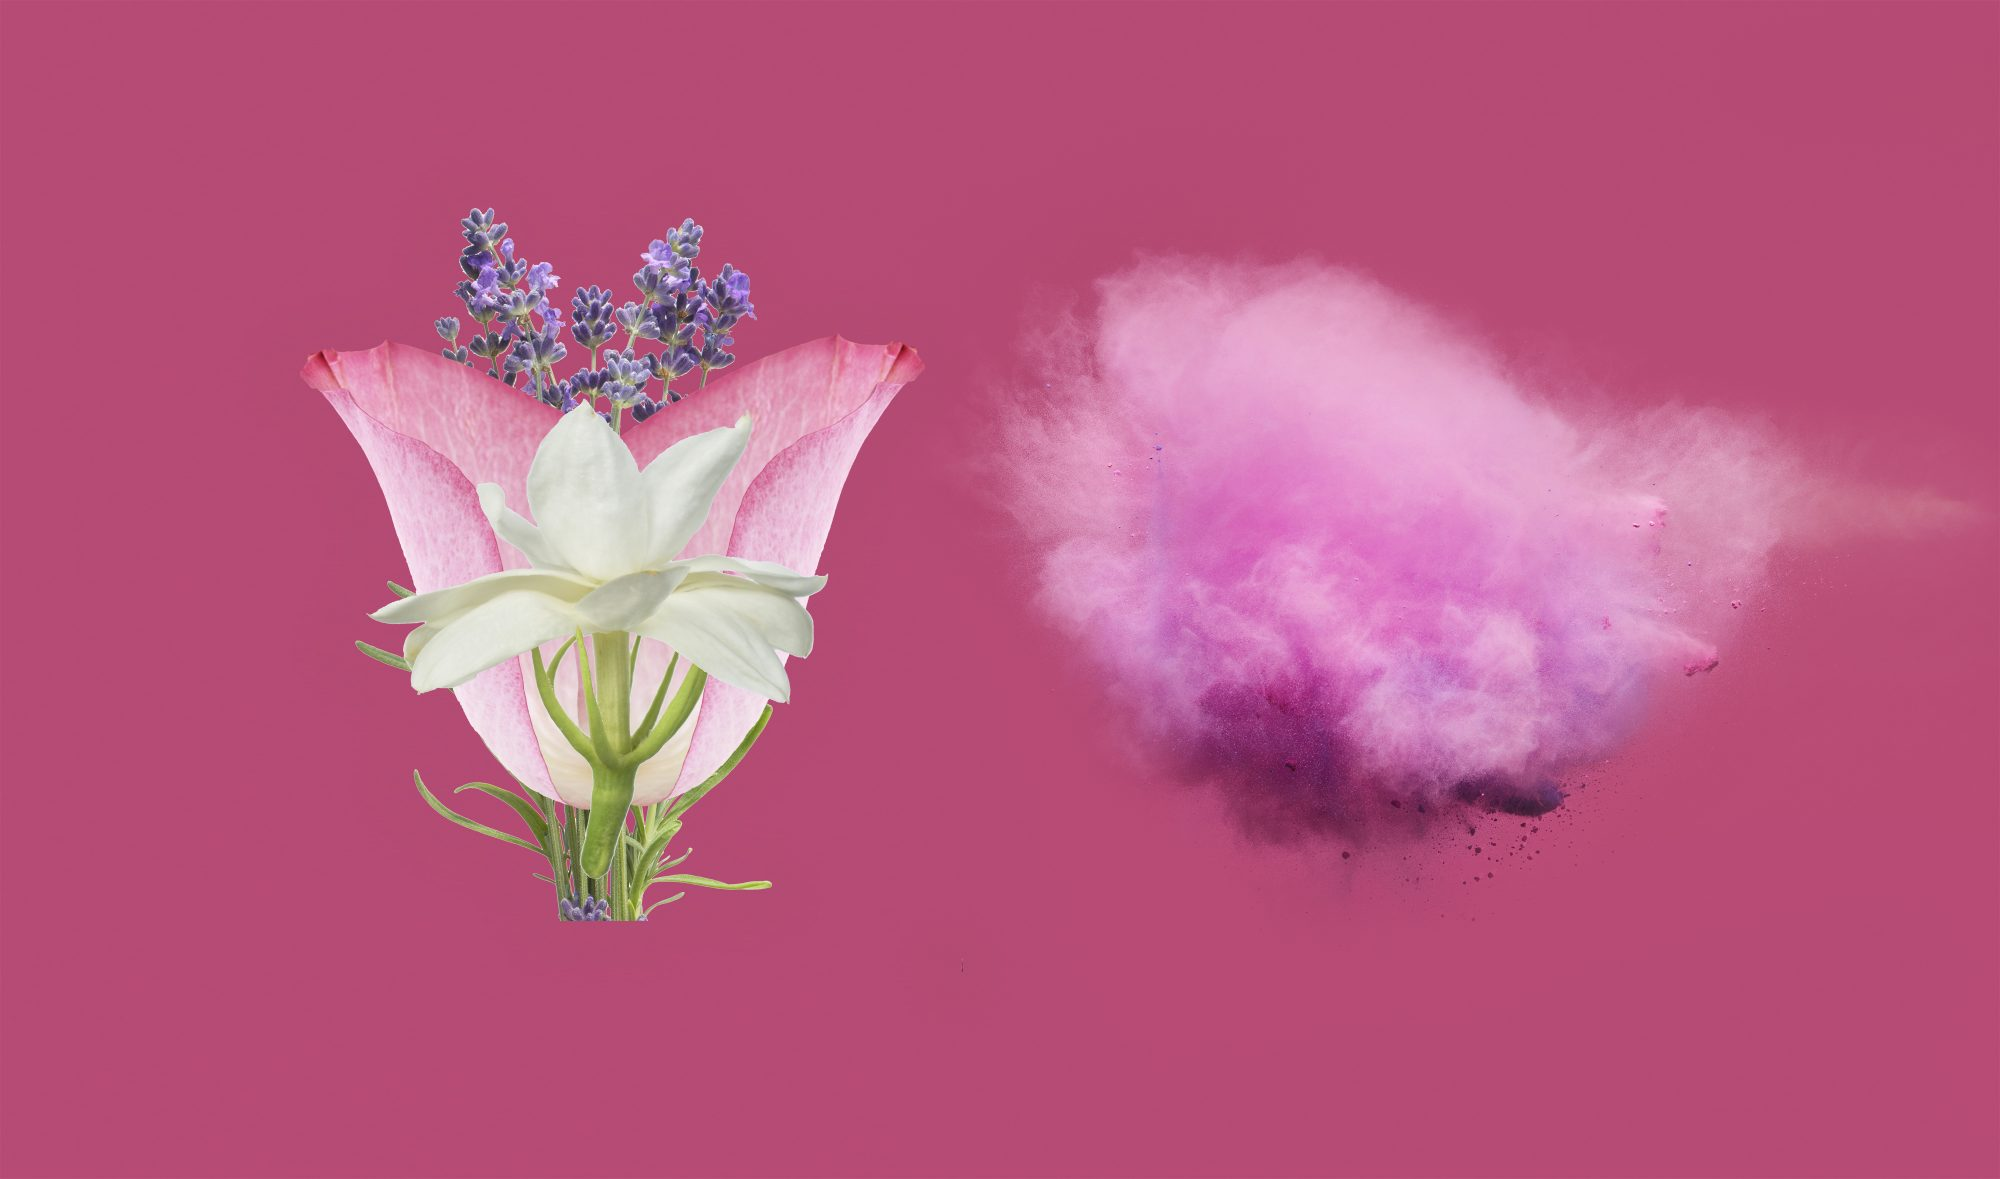 7 Fragrant Flowers That Make a Garden (Or Bouquet) Smell Amazing